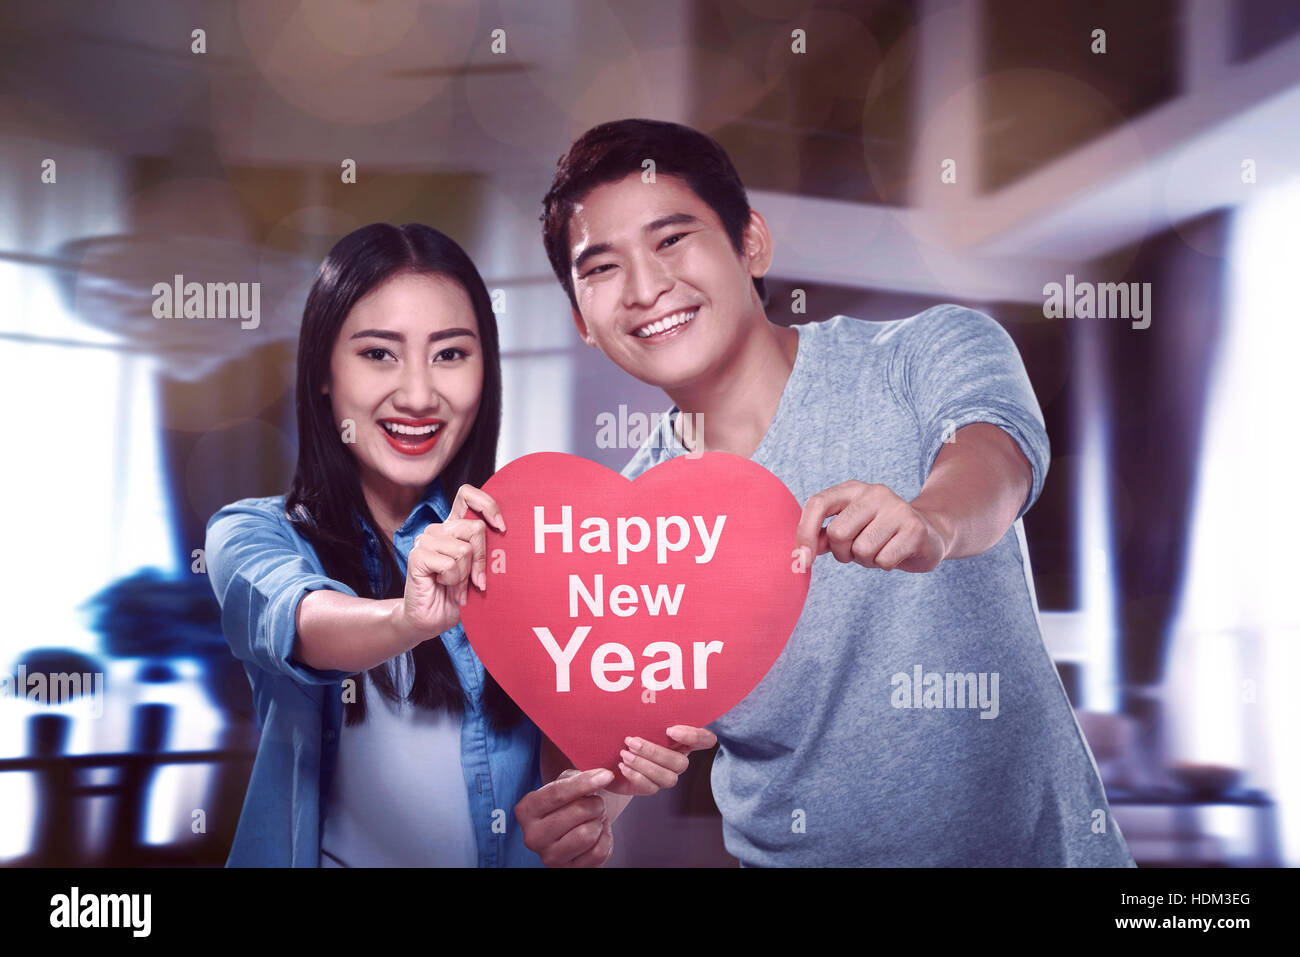 asian couple holding heart sign with happy new year typing